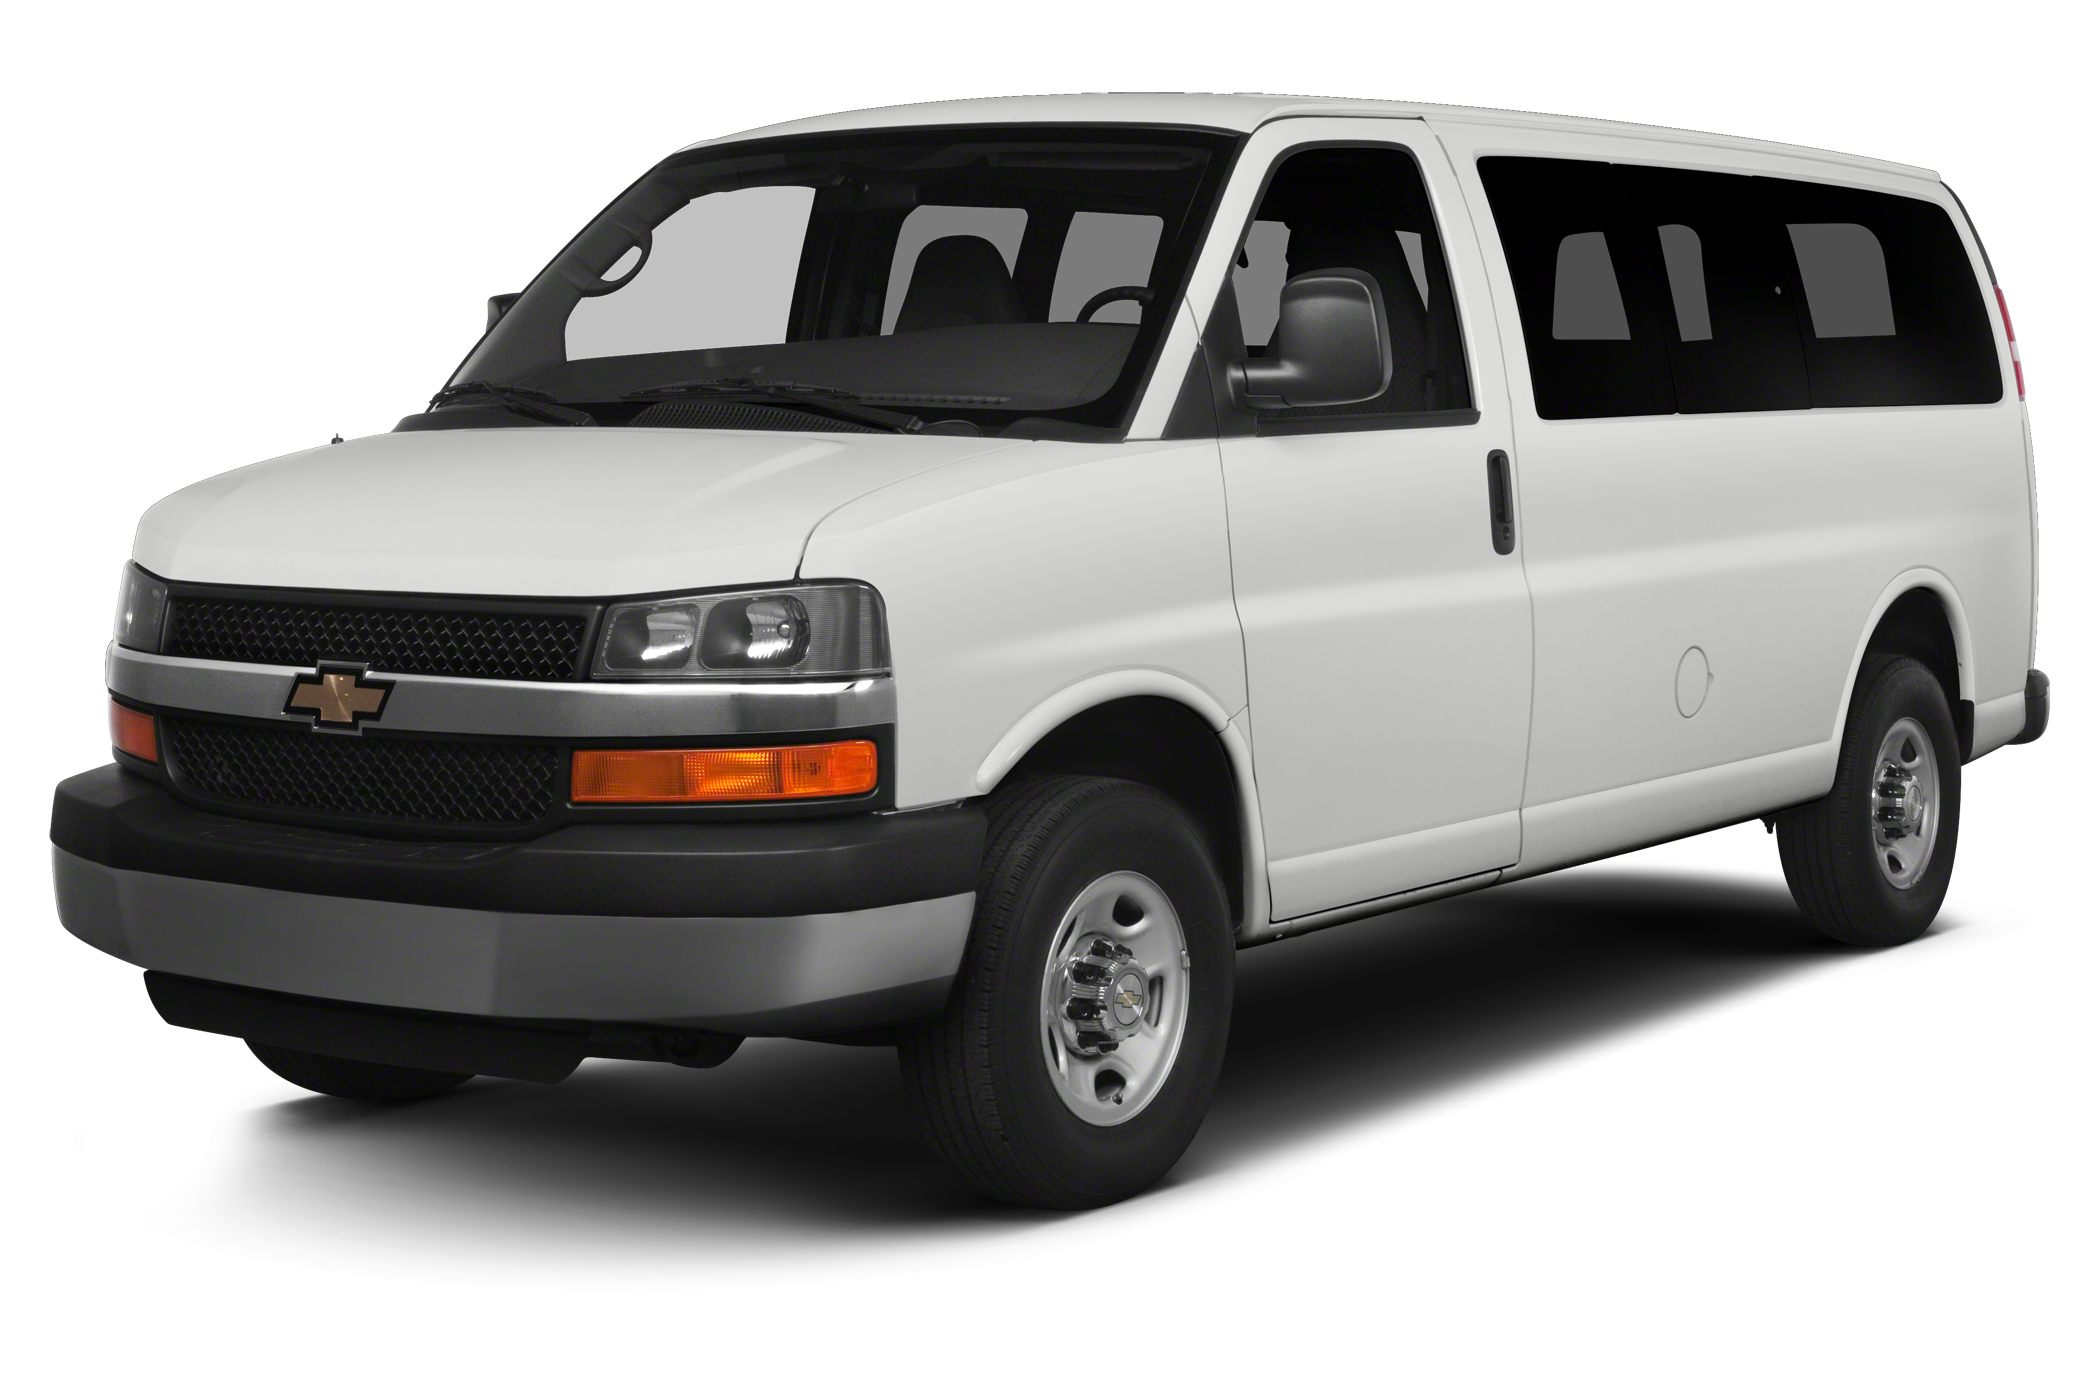 2014 Chevrolet Express 3500 LT Passenger Van for sale in Westminster for $24,889 with 23,576 miles